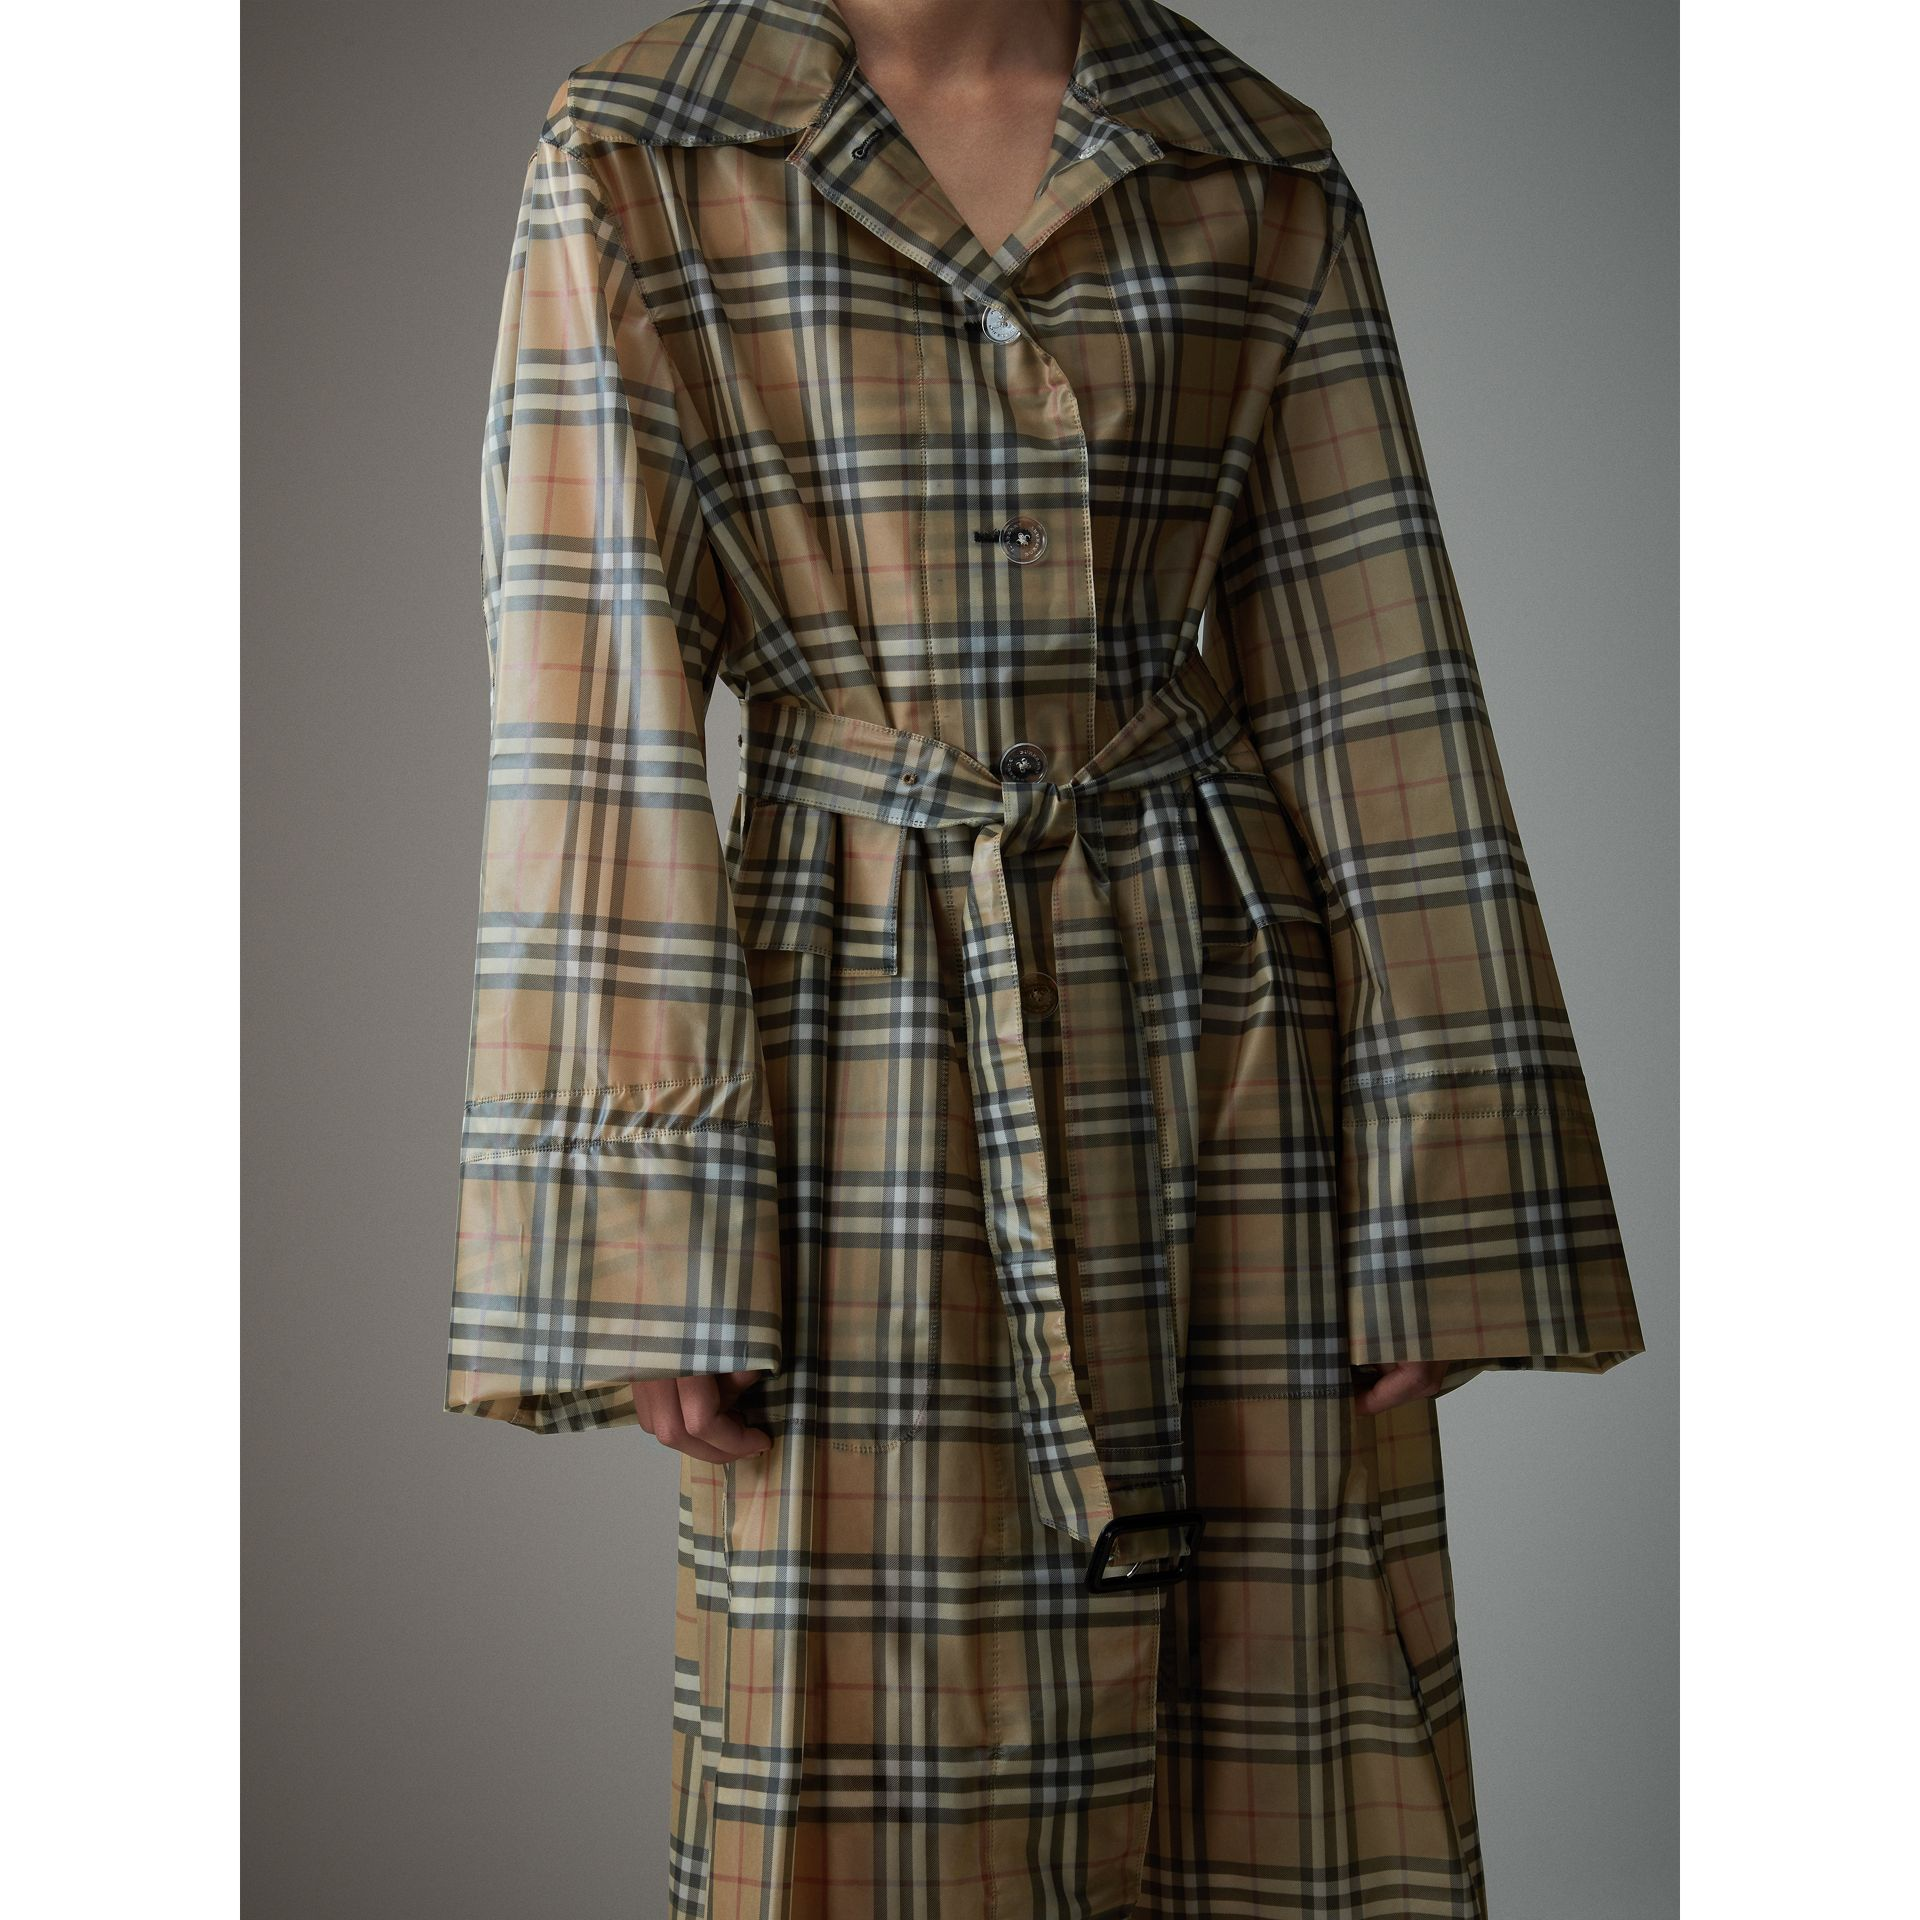 Vintage Check Soft-touch Plastic Single-breasted Coat in Antique Yellow - Women | Burberry Australia - gallery image 5